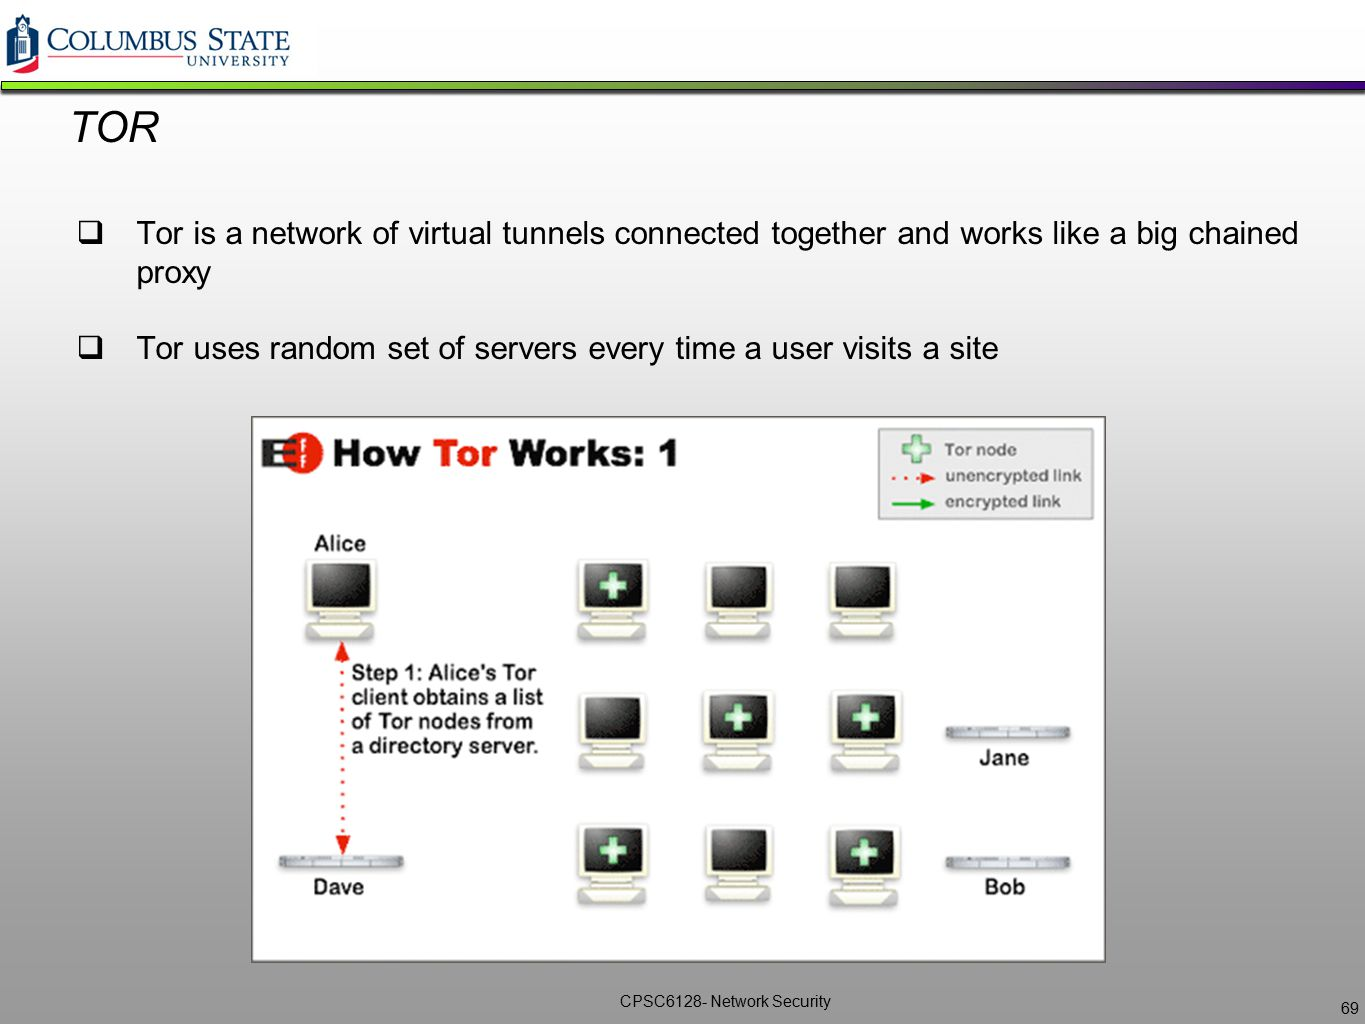 TOR Tor is a network of virtual tunnels connected together and works like a big chained proxy.